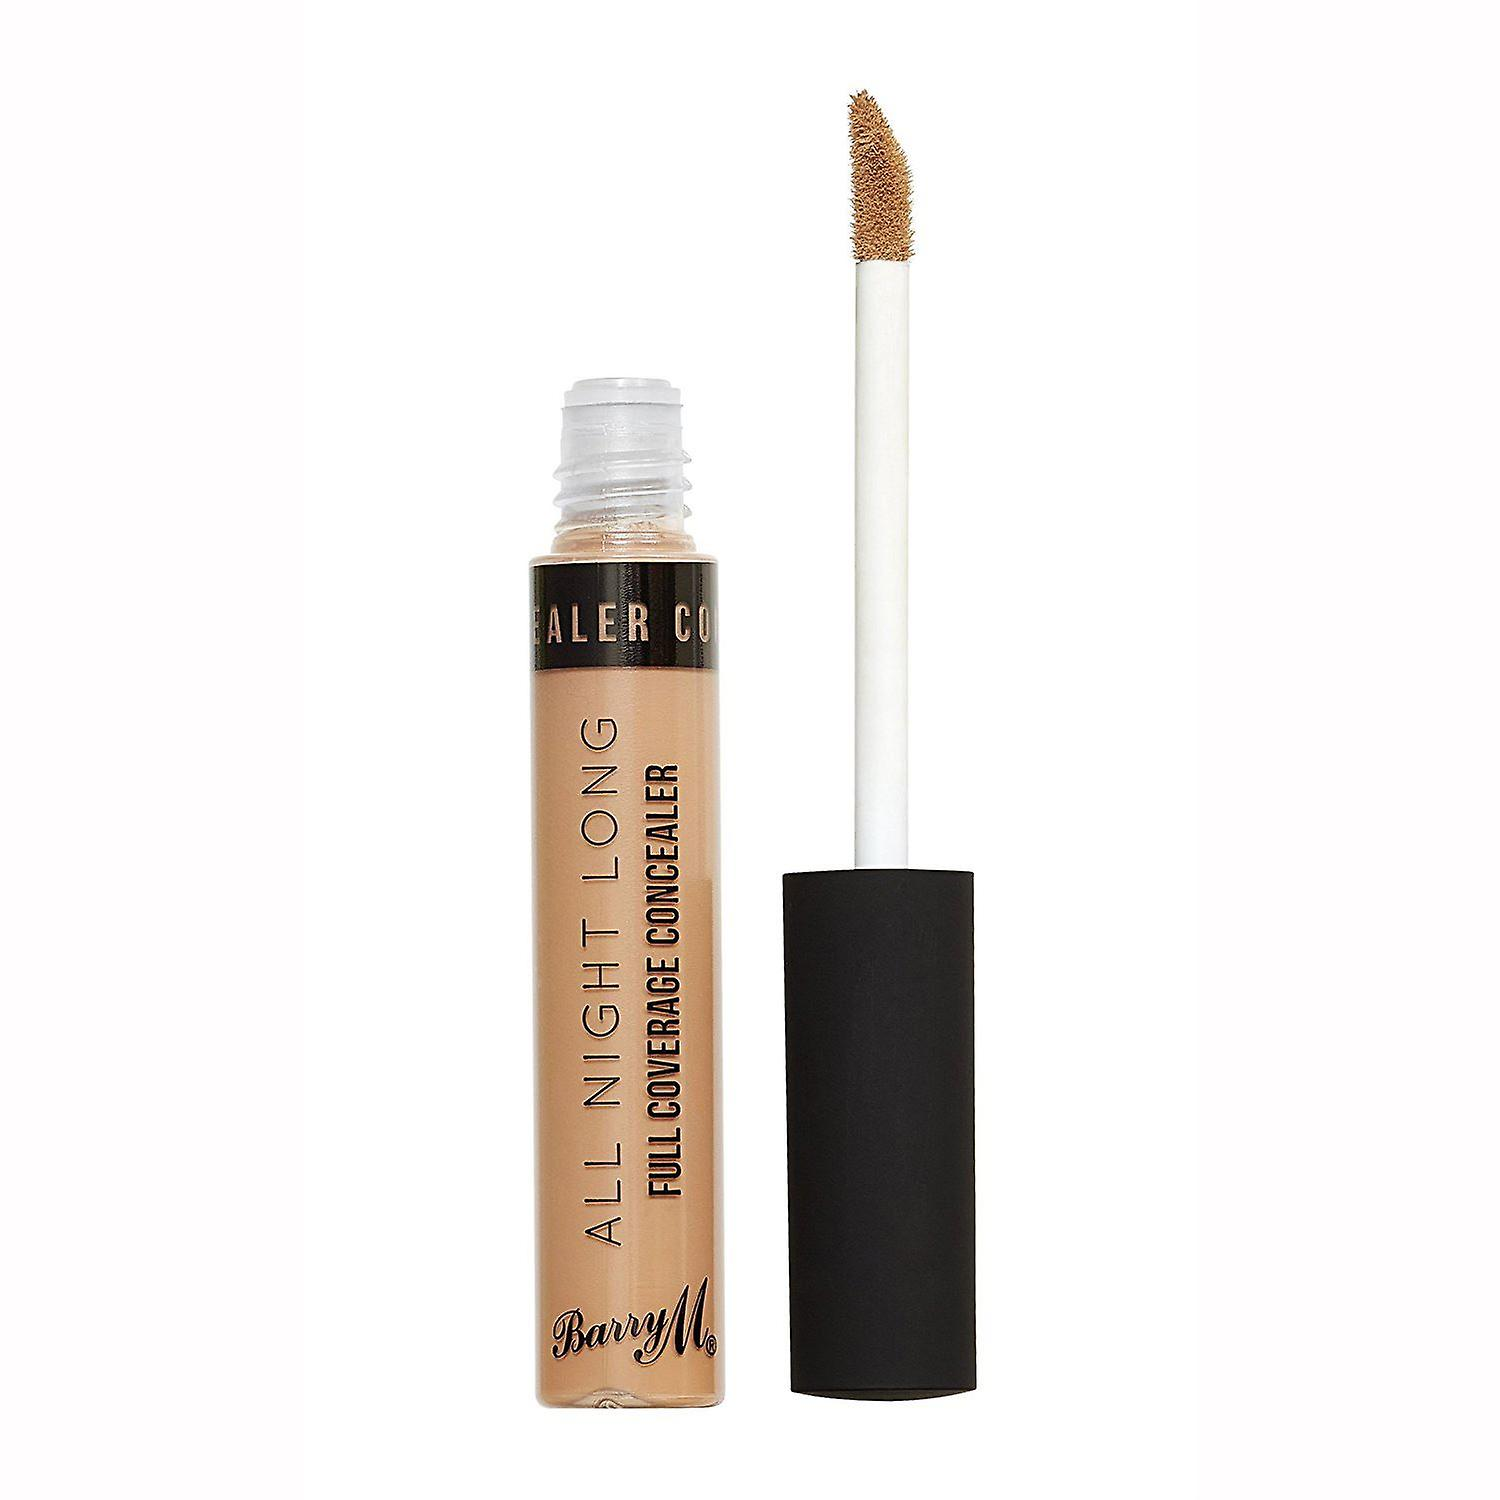 Barry M All Night Long Full Coverage Concealer - Hazelnut